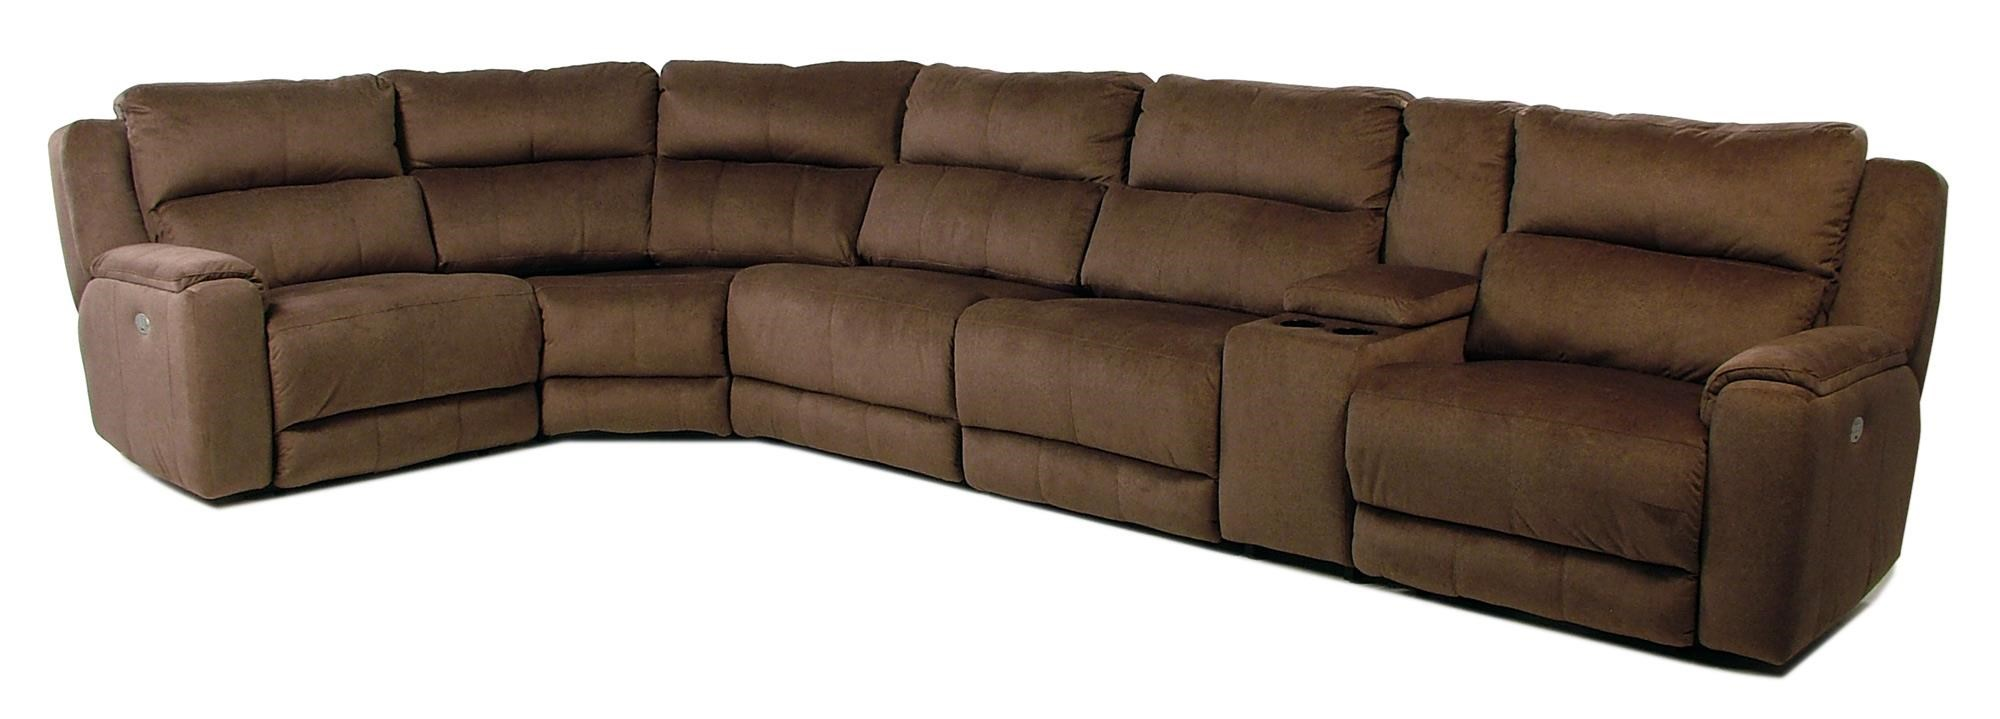 Design to Recline Tranquility 6PC Power Reclining Sectional - Item Number: 883-05P+06P+80+84+92+47